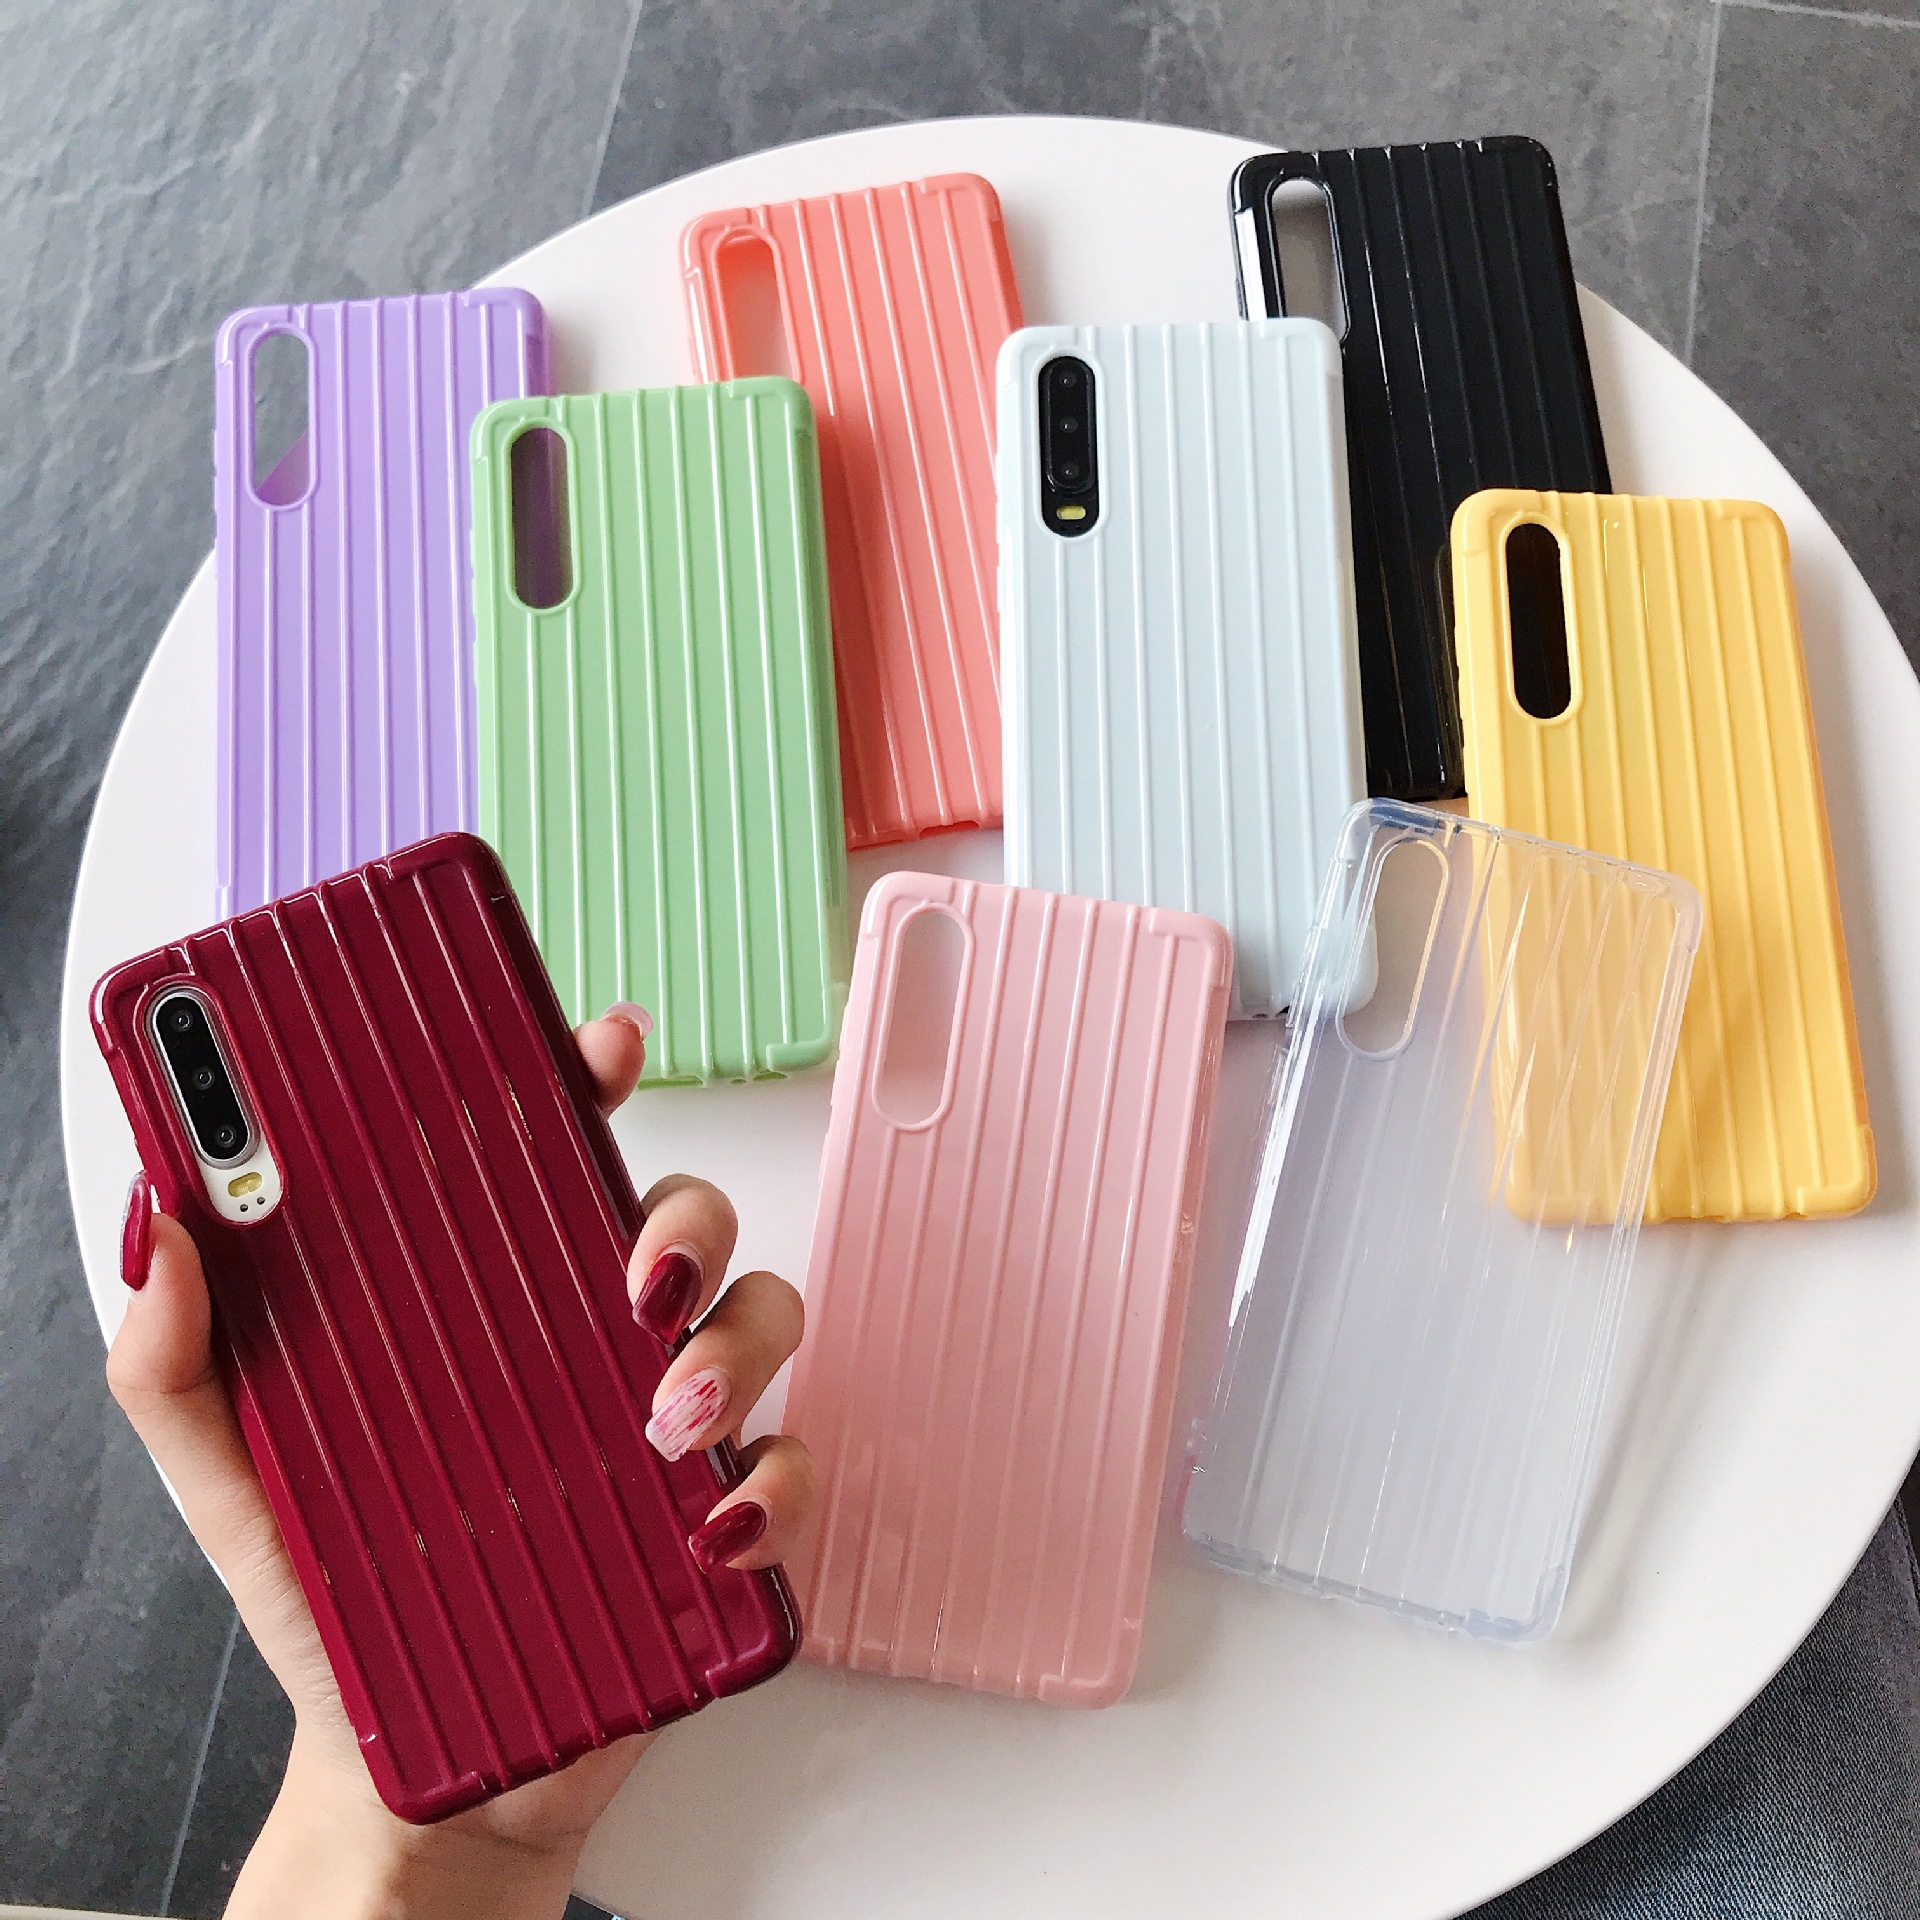 Soft Silicone <font><b>Case</b></font> For <font><b>Samsung</b></font> <font><b>Galaxy</b></font> A30 A20 A10 A60 <font><b>A70</b></font> M10 M20 M40 2019 Note 9 J4 Plus 2018 surface luggage box <font><b>phone</b></font> <font><b>case</b></font> image